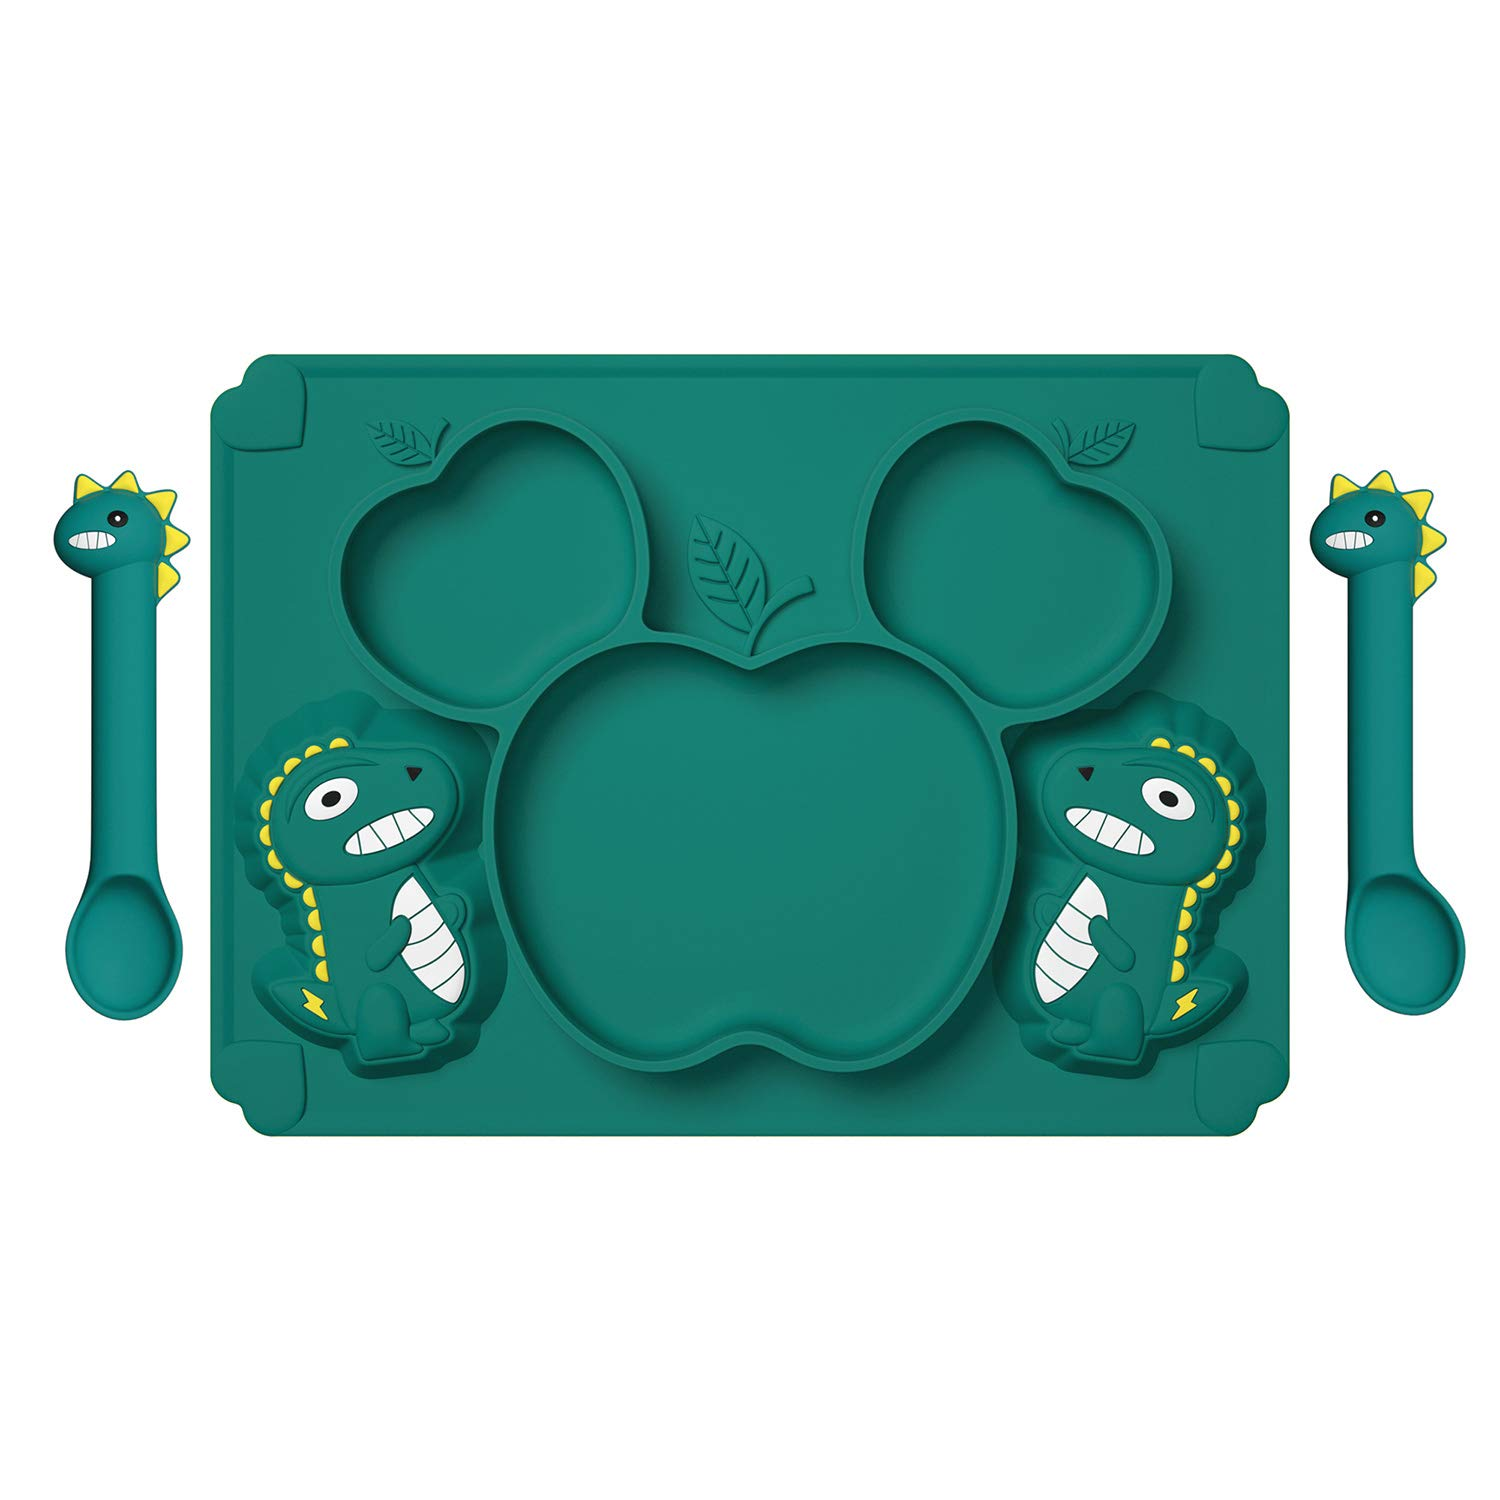 Toddler Plates for Baby Feeding;Silicone Baby Plates with Deep Divided for Kids to Feed Themselves,Baby Place Mats with Cute Dinosaur Design,BPA Free (Dark Green Toddler Plate)